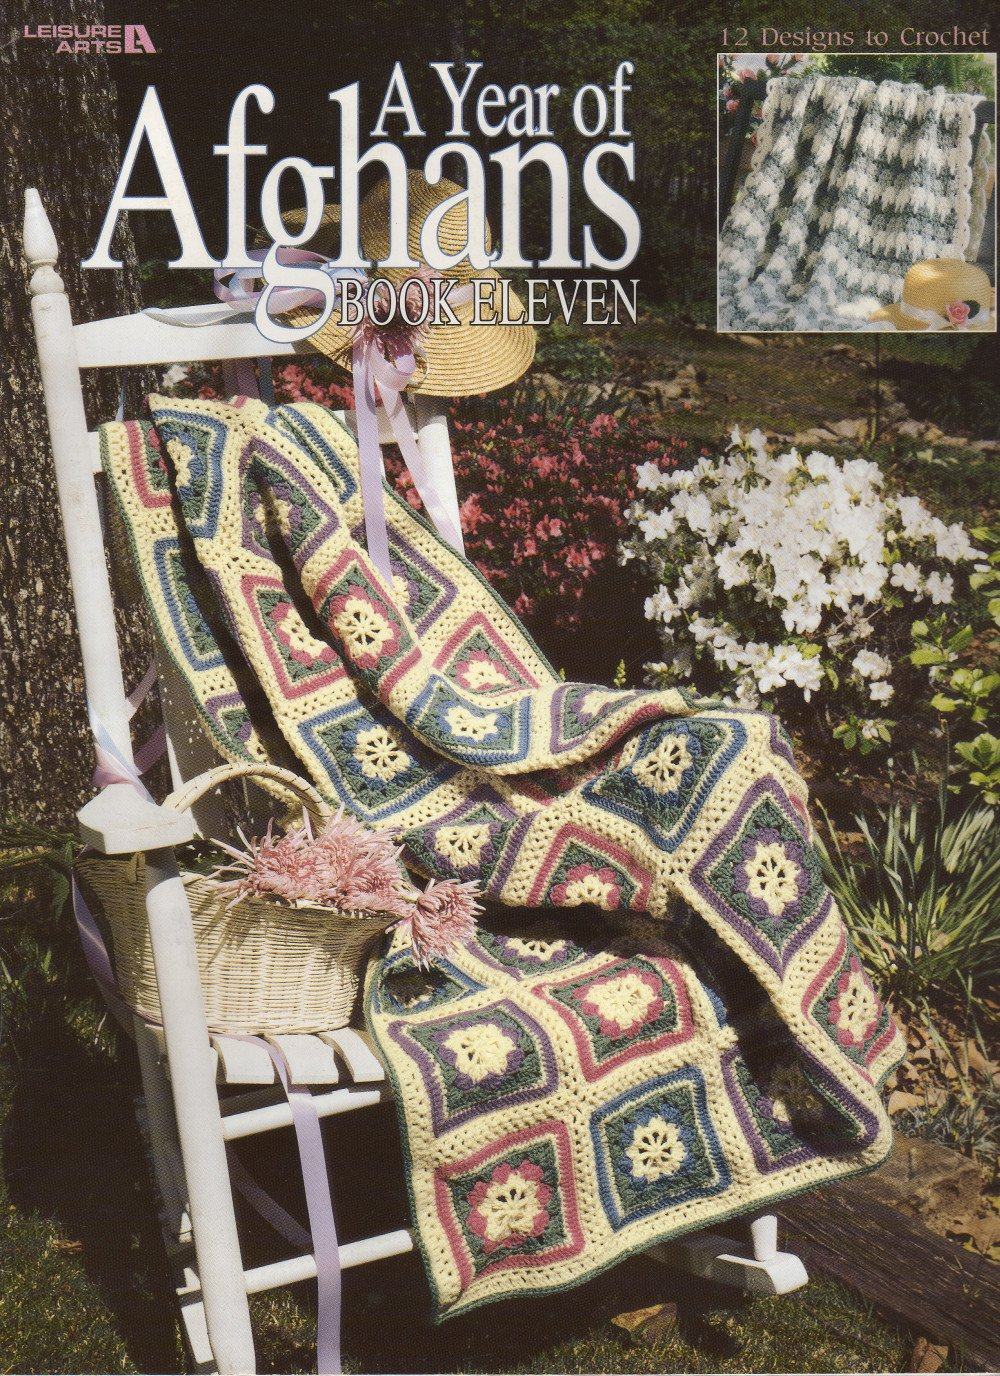 A Year of Afghans Book Eleven 12 Designs to Crochet Leisure Arts 3190